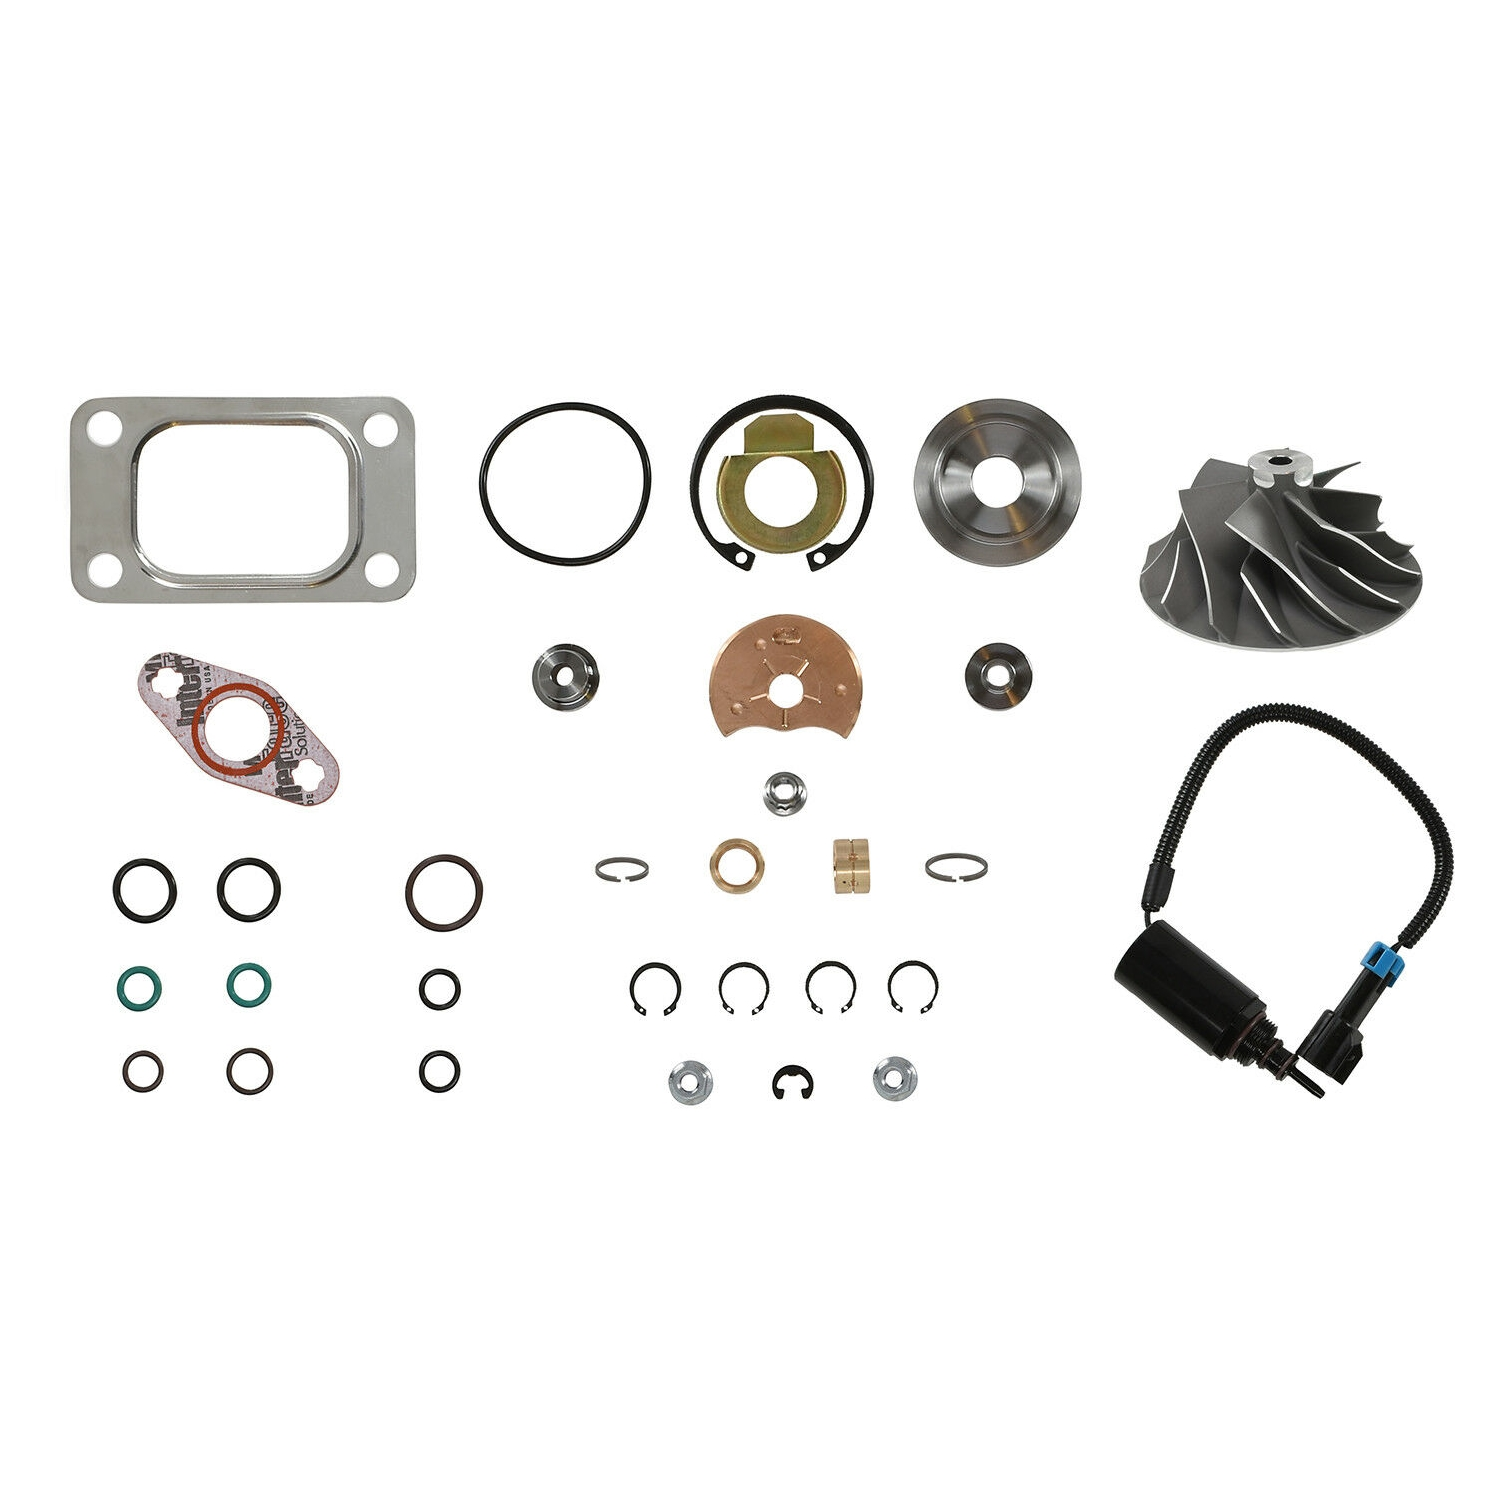 HE351CW Turbo Rebuild Kit Cast Wheel Wastegate Solenoid For 04.5-07 5.9L ISB Dodge Ram Cummins Diesel